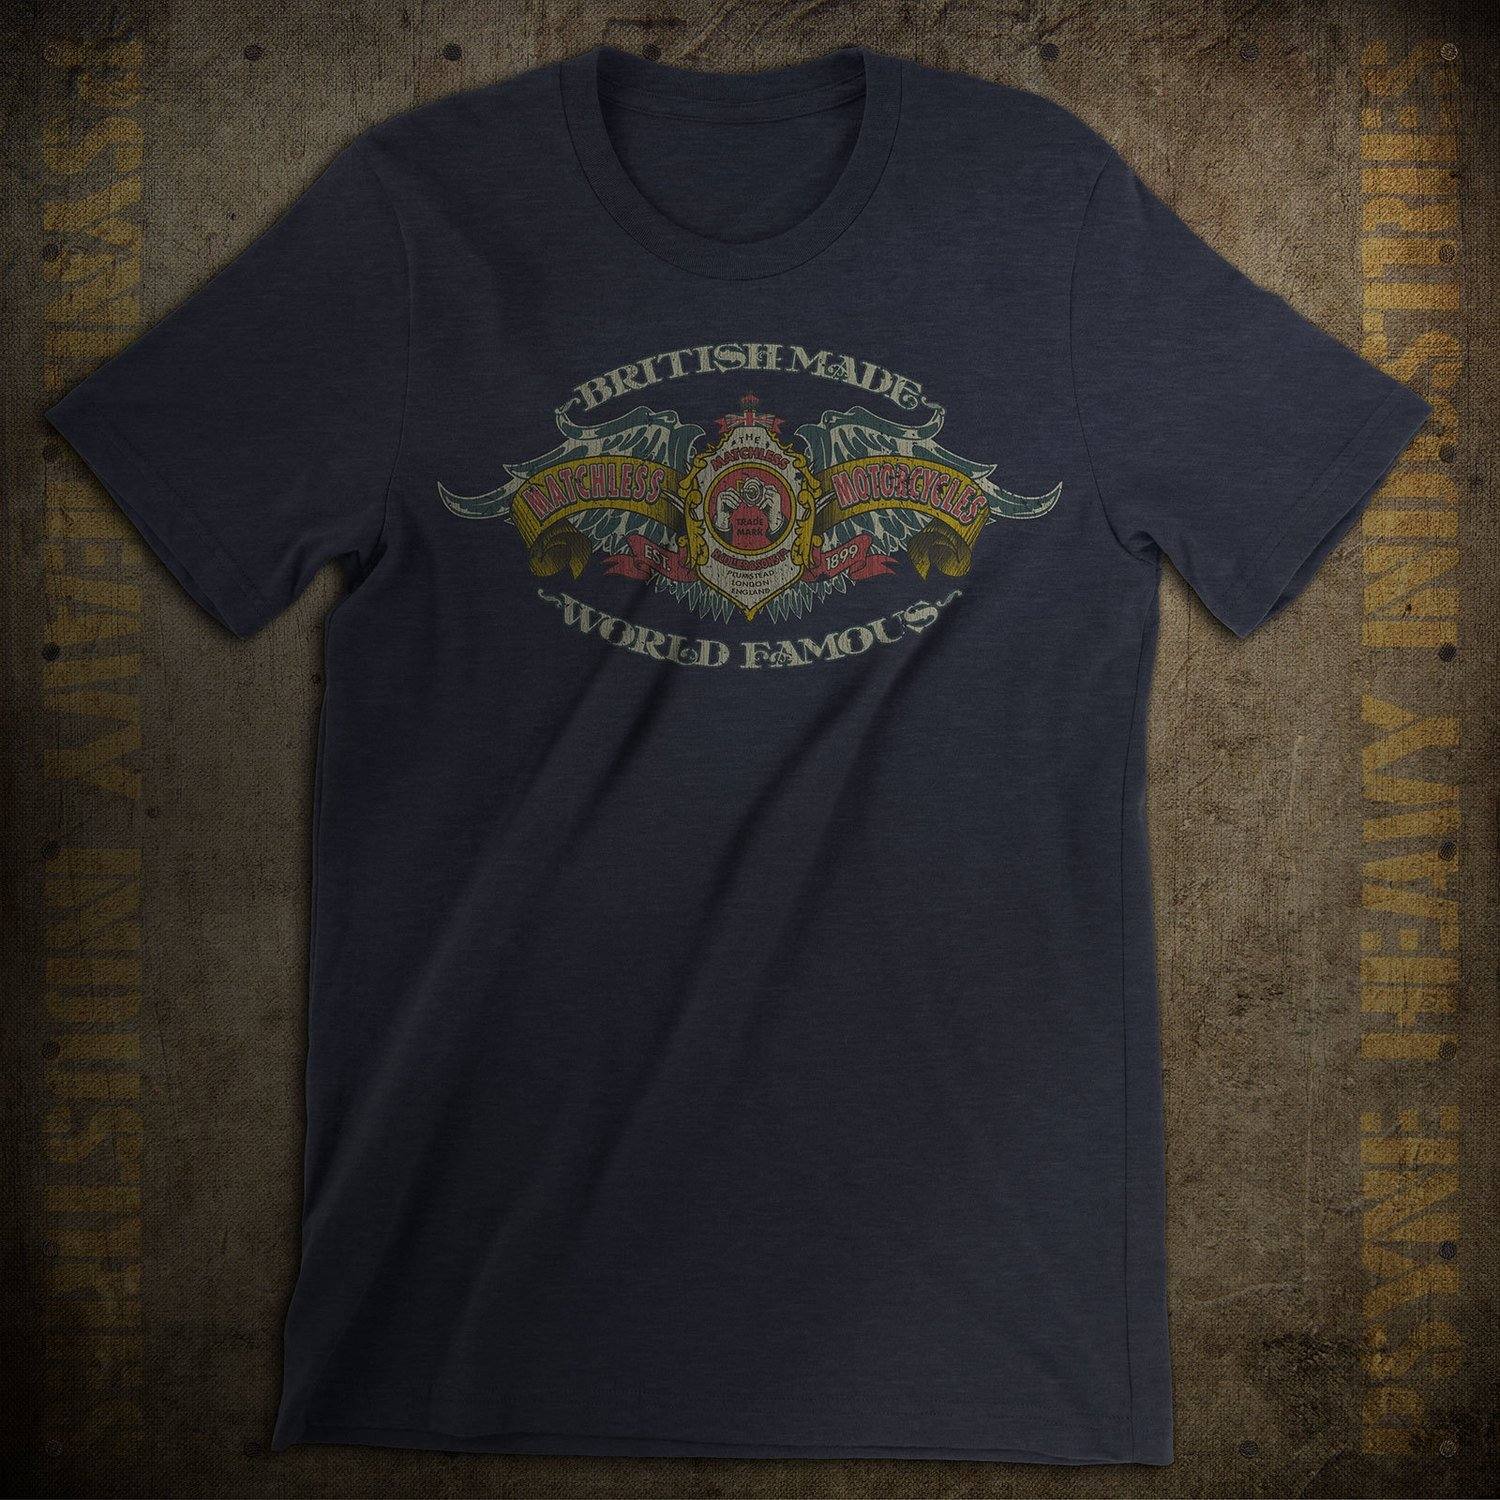 Matchless Motorcycles World Famous Vintage T-Shirt